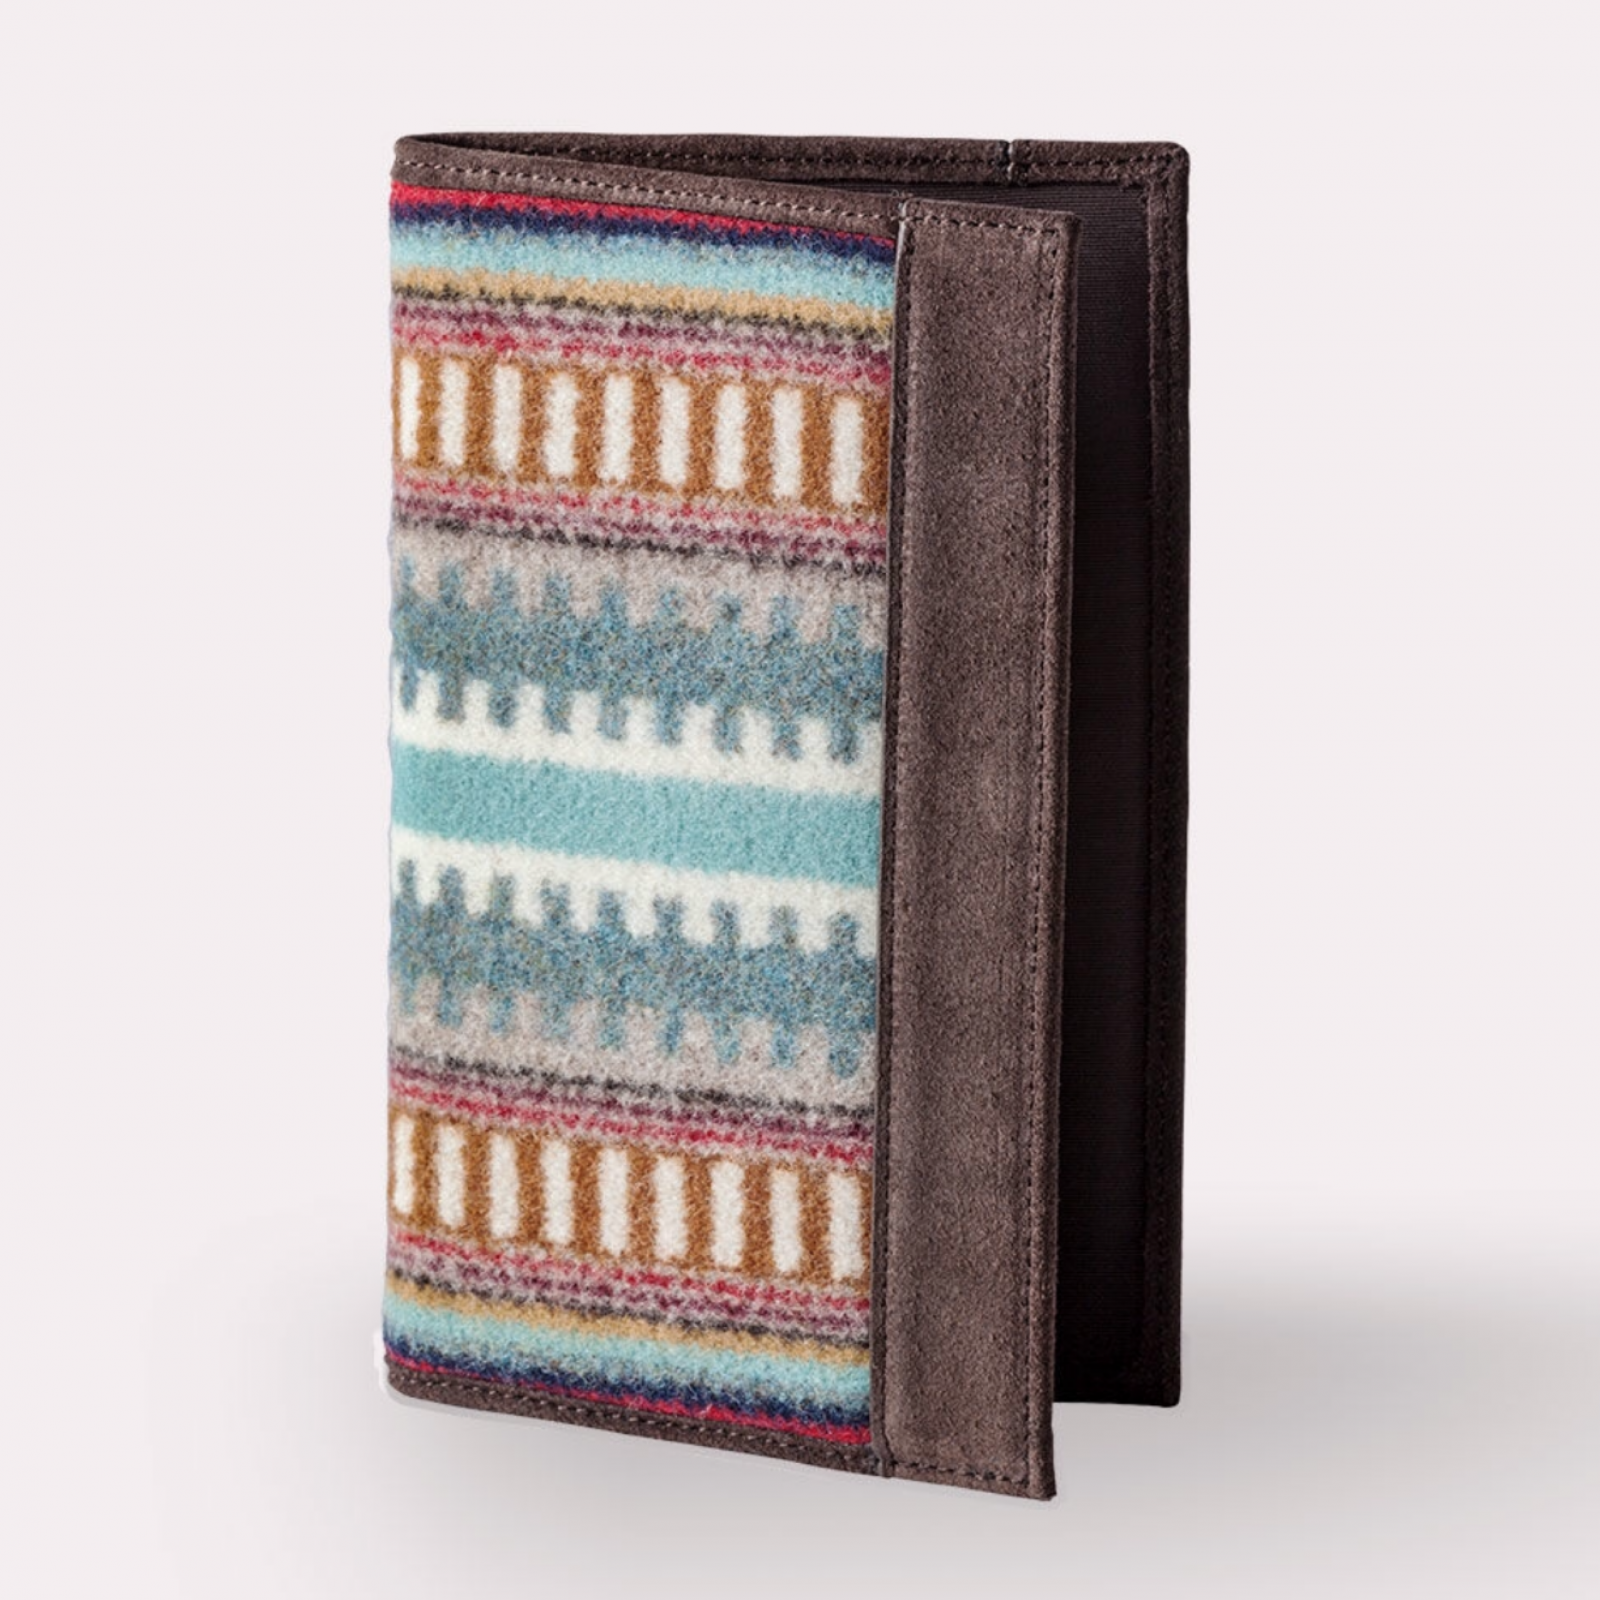 American West Secretary Wallet from Pendleton